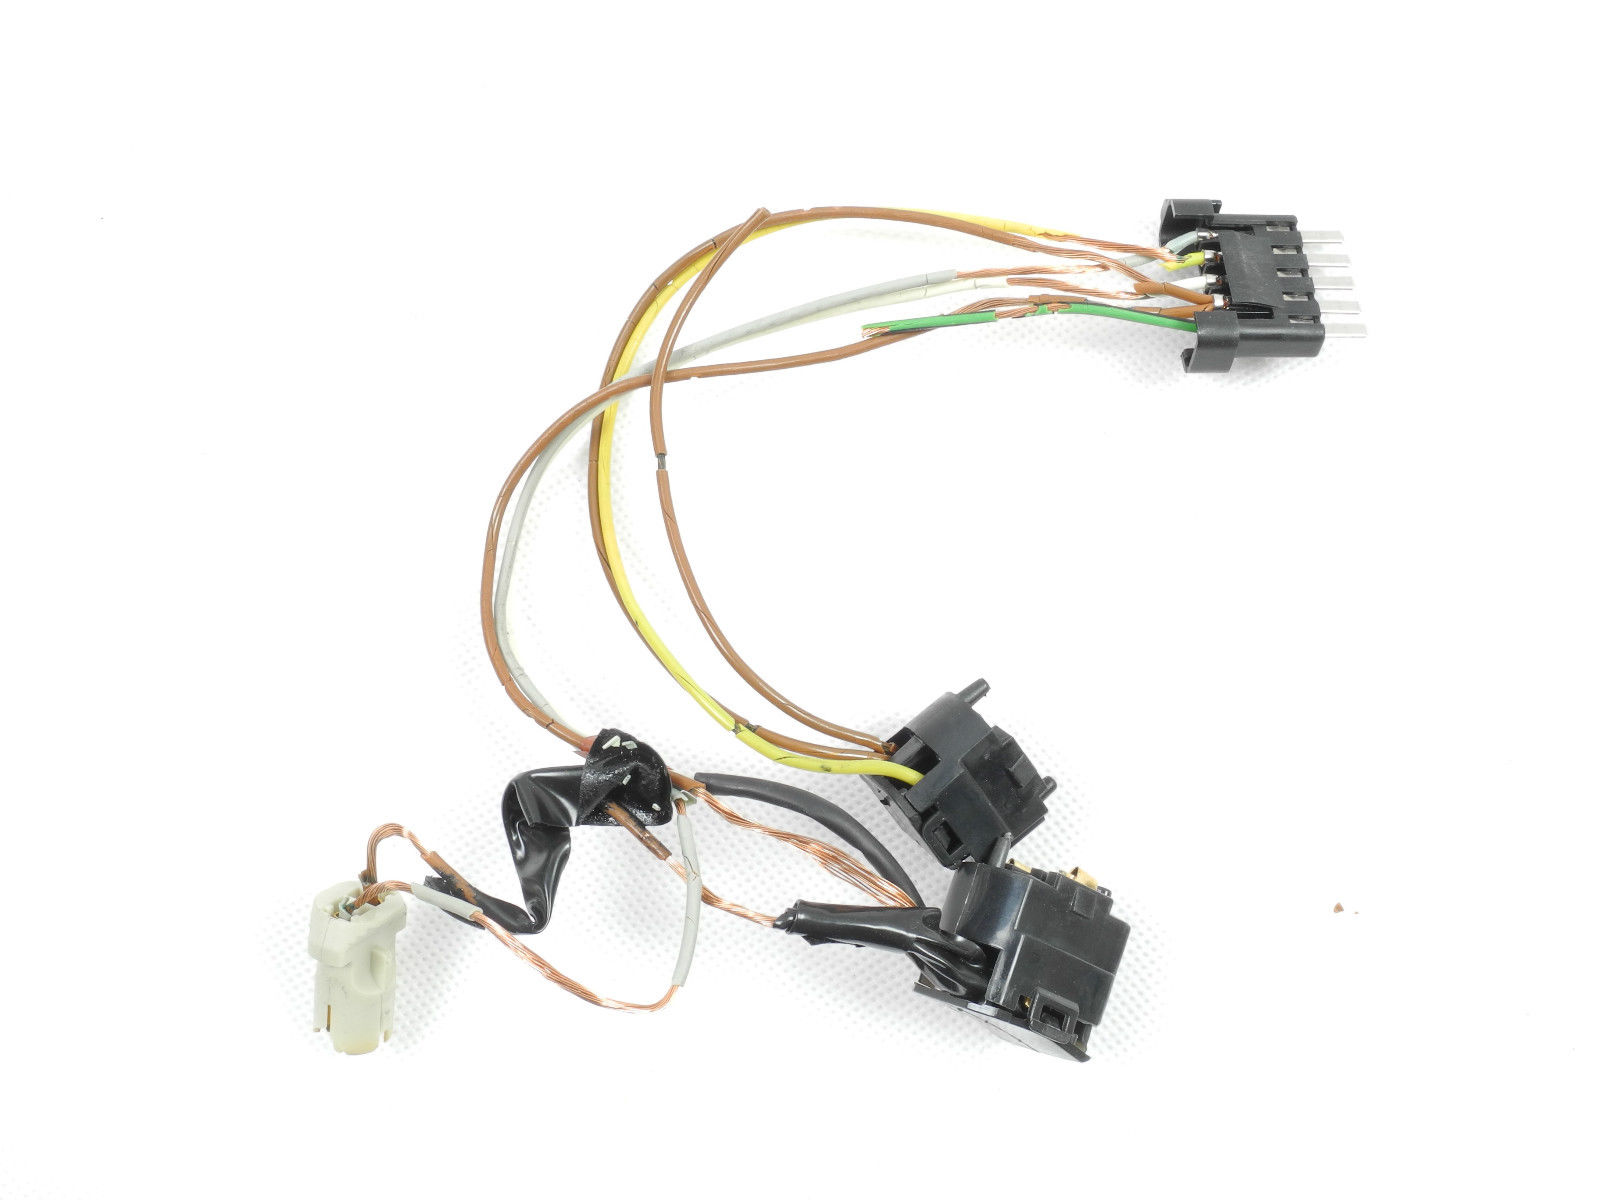 F3DC 1974 Mercedes Kit Car Wiring Harness | Wiring LibraryWiring Library